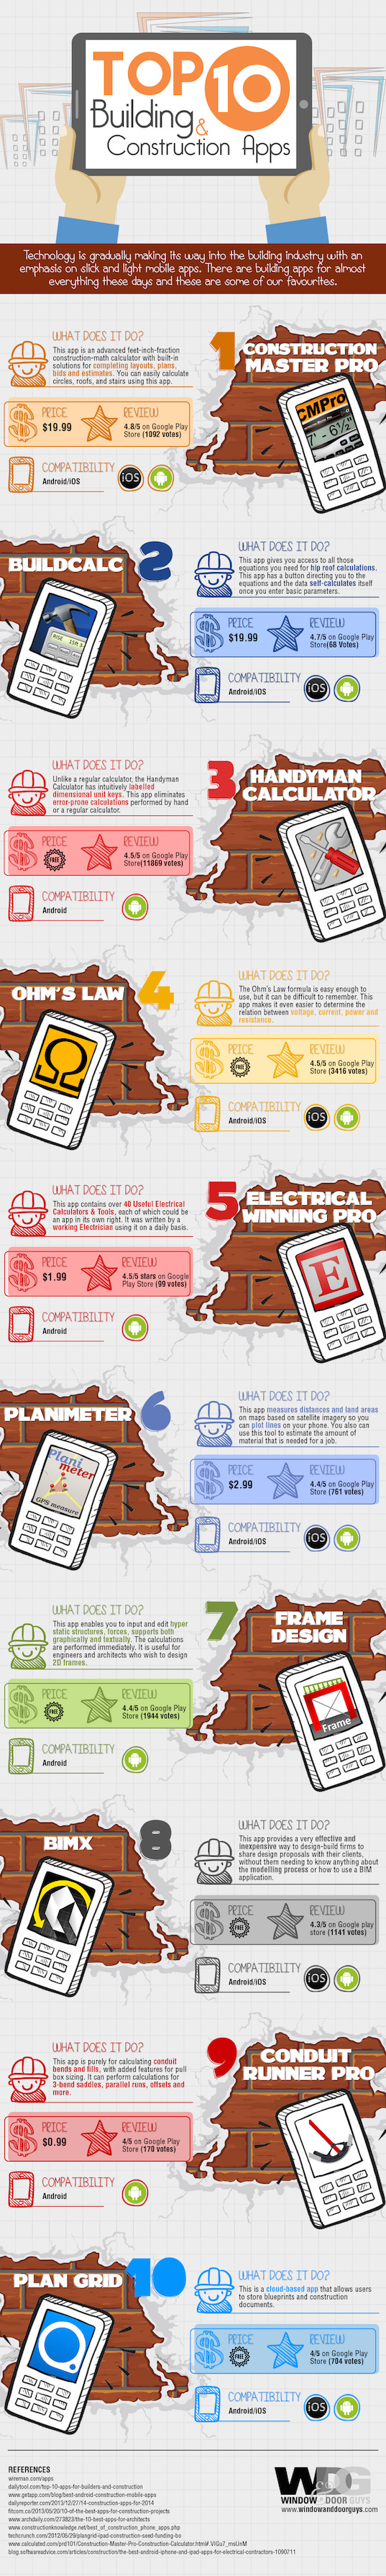 apps-construccion-infografia